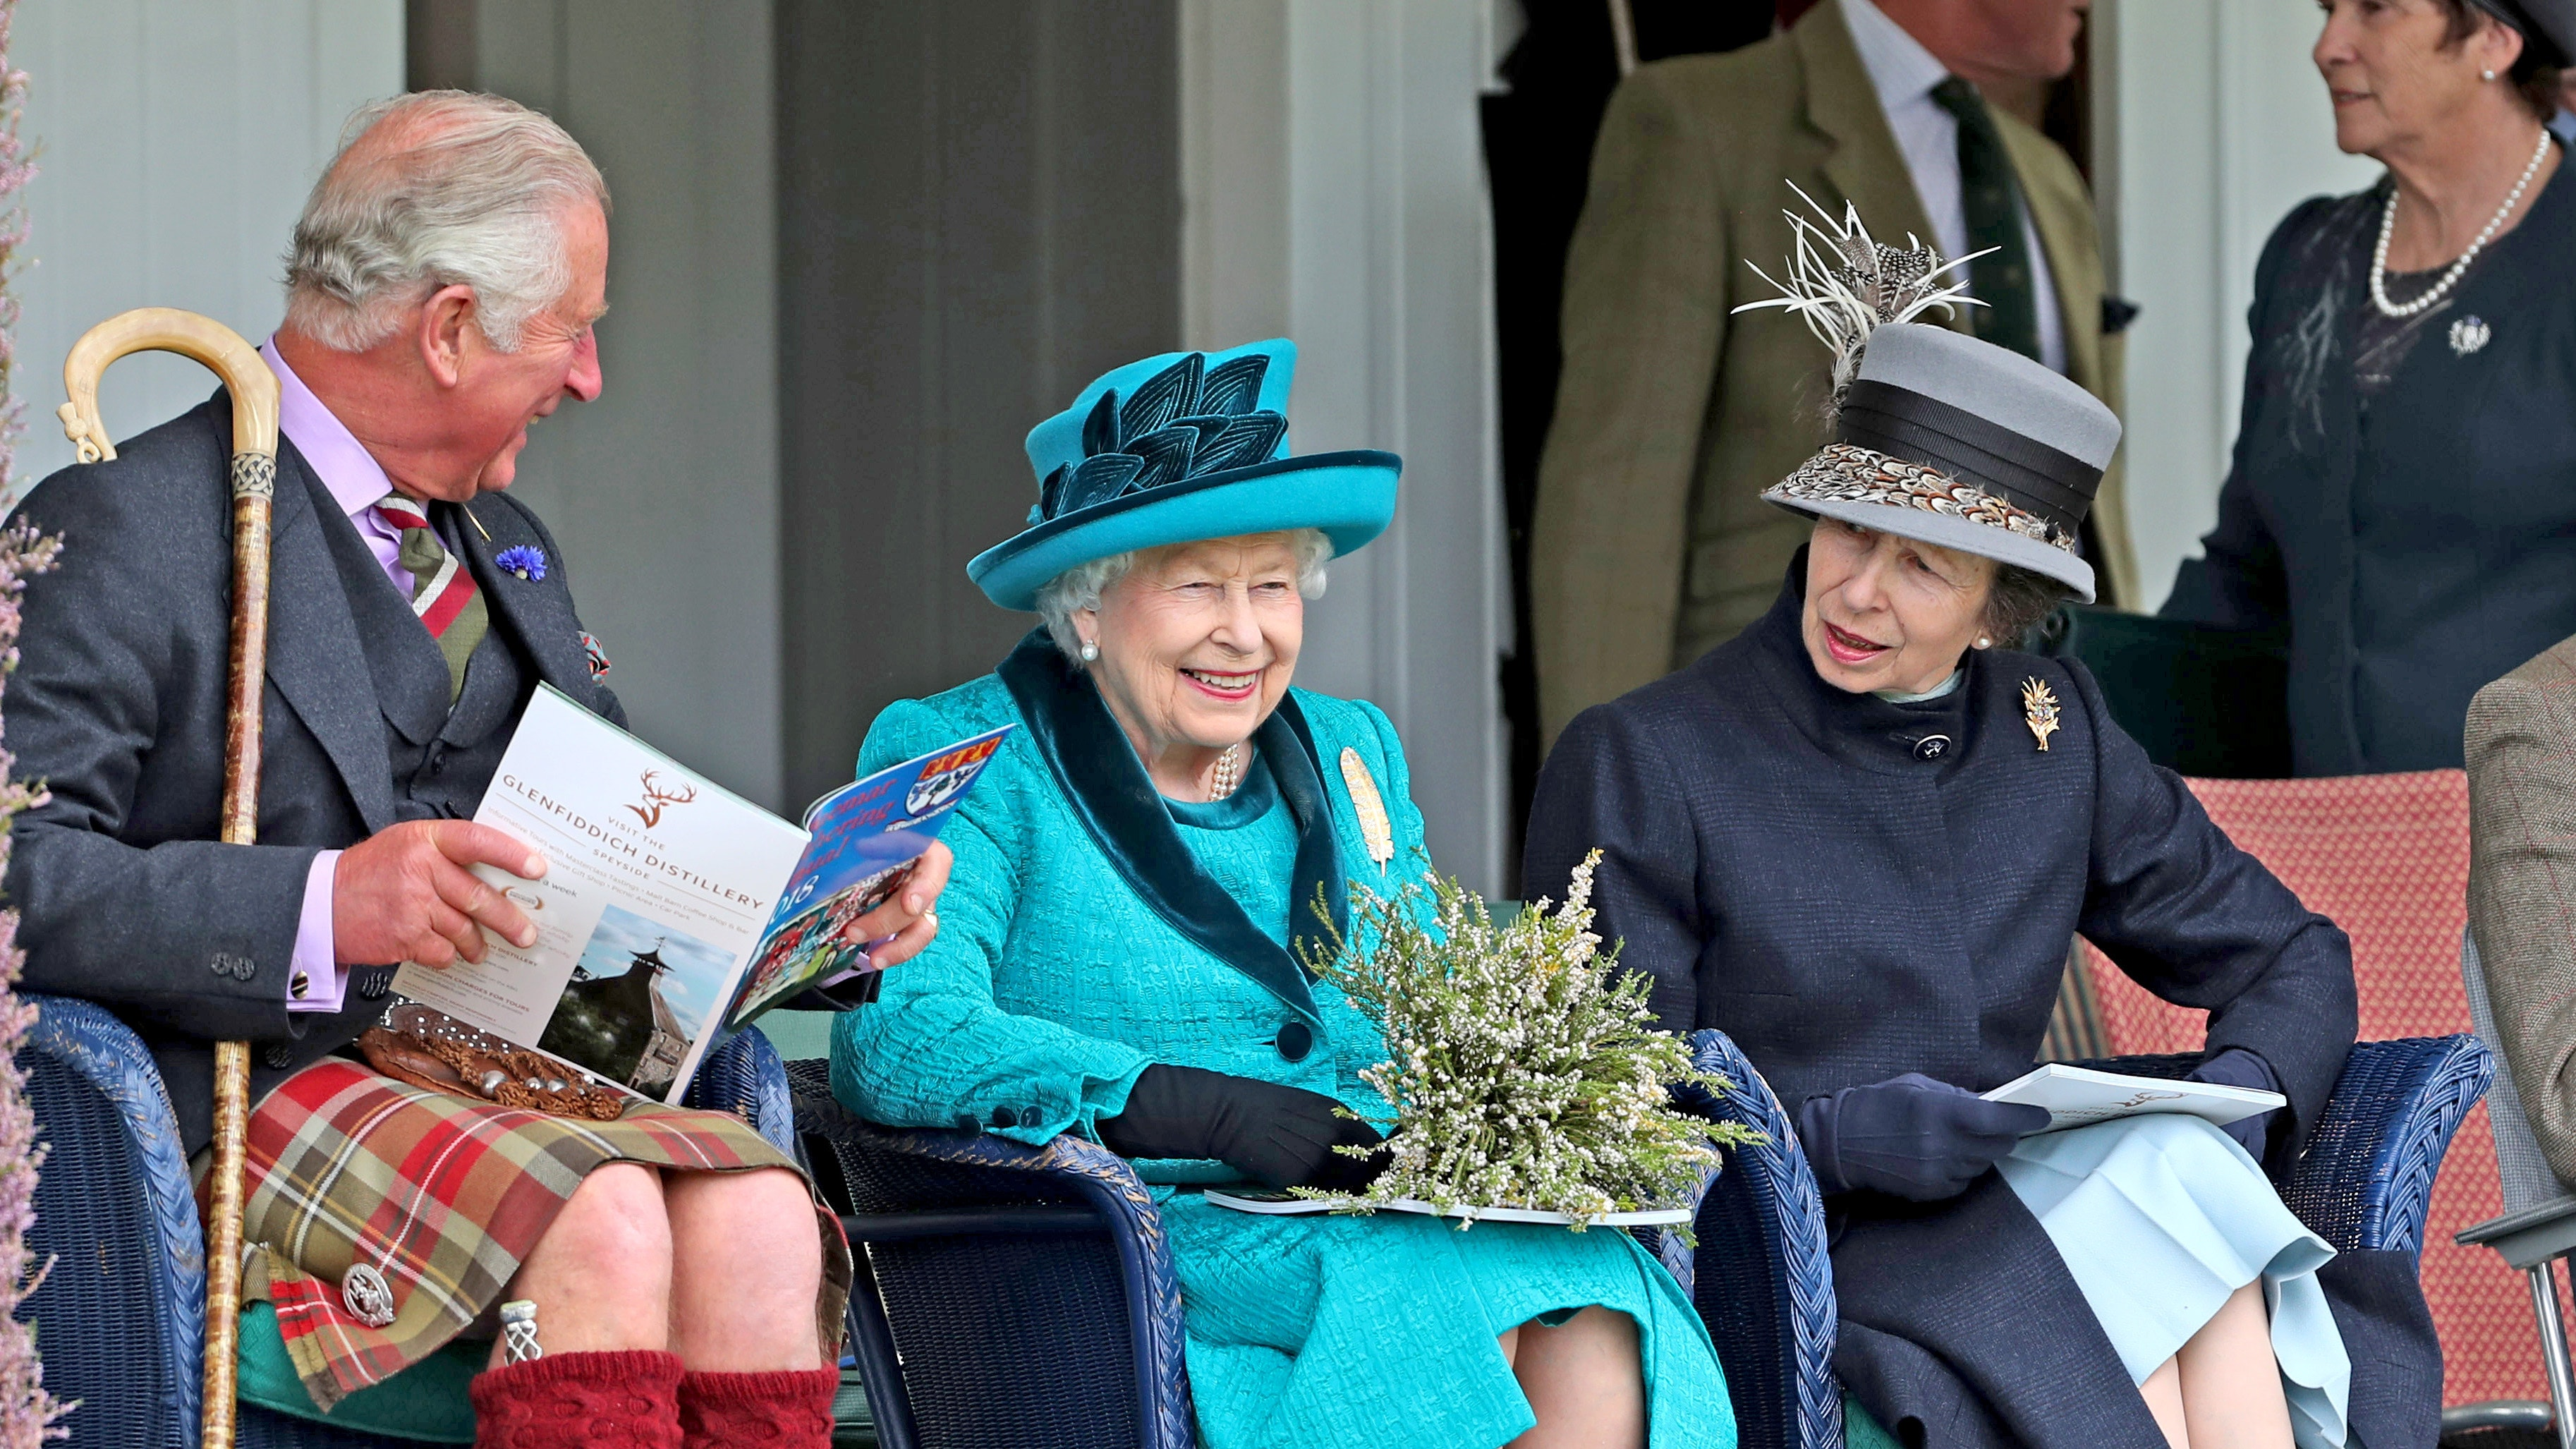 Family day out for Queen, Charles and Anne at Braemar Gathering